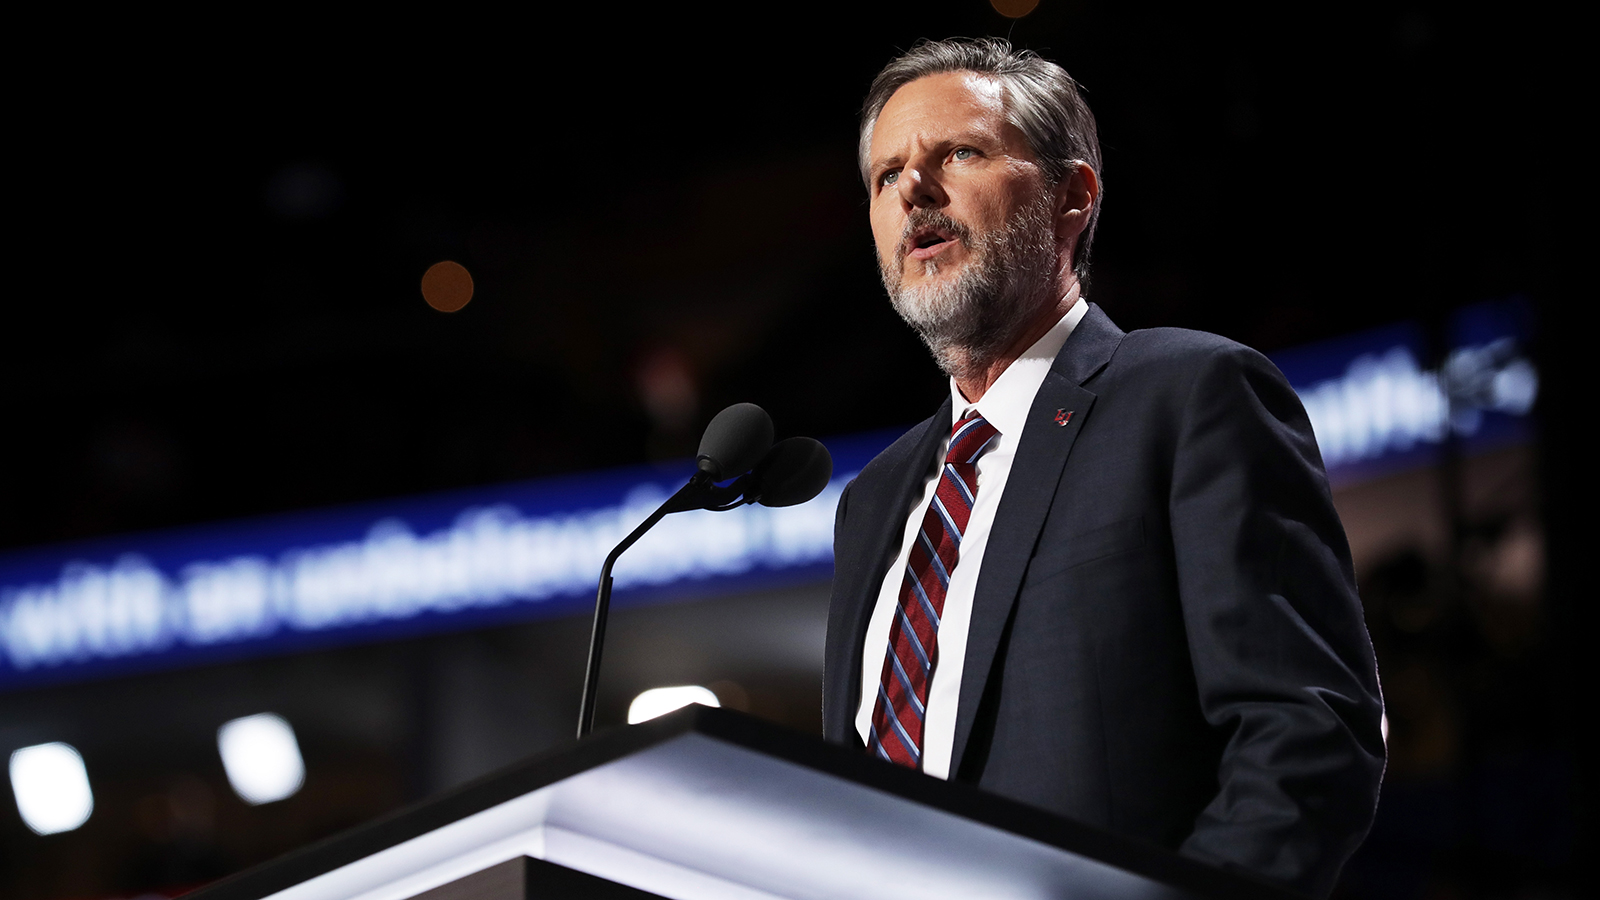 Liberty University files lawsuit against former president Jerry Falwell Jr.